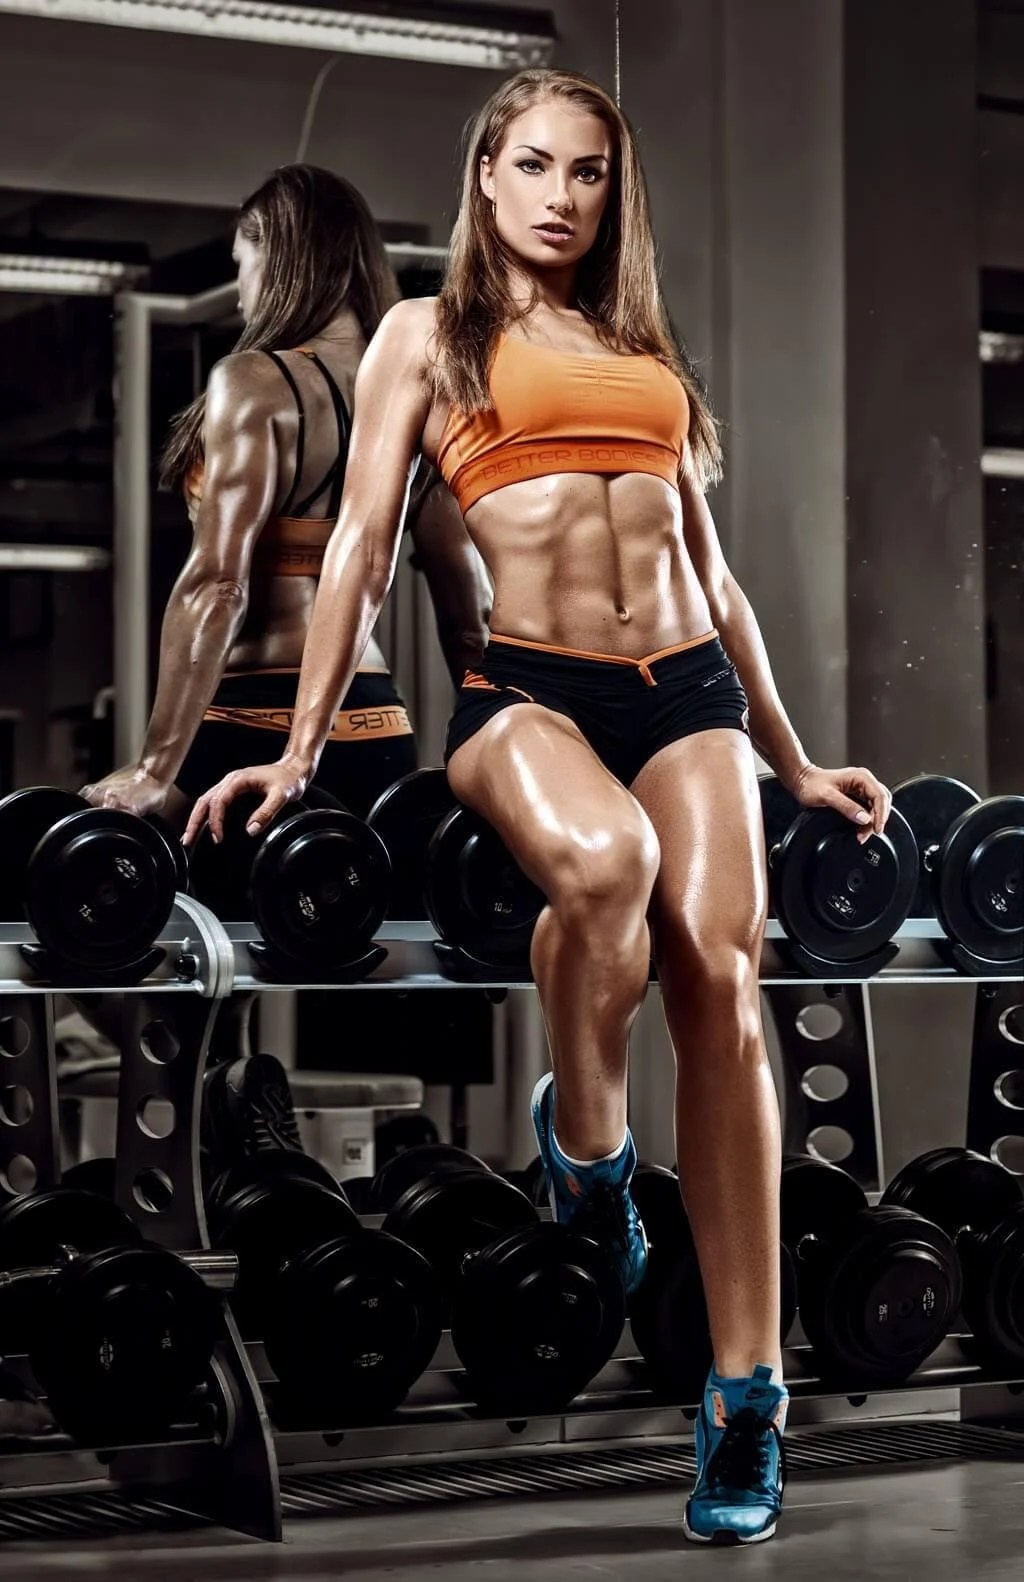 Girls Workout Wallpapers : Female Fitness Wallpapers Top